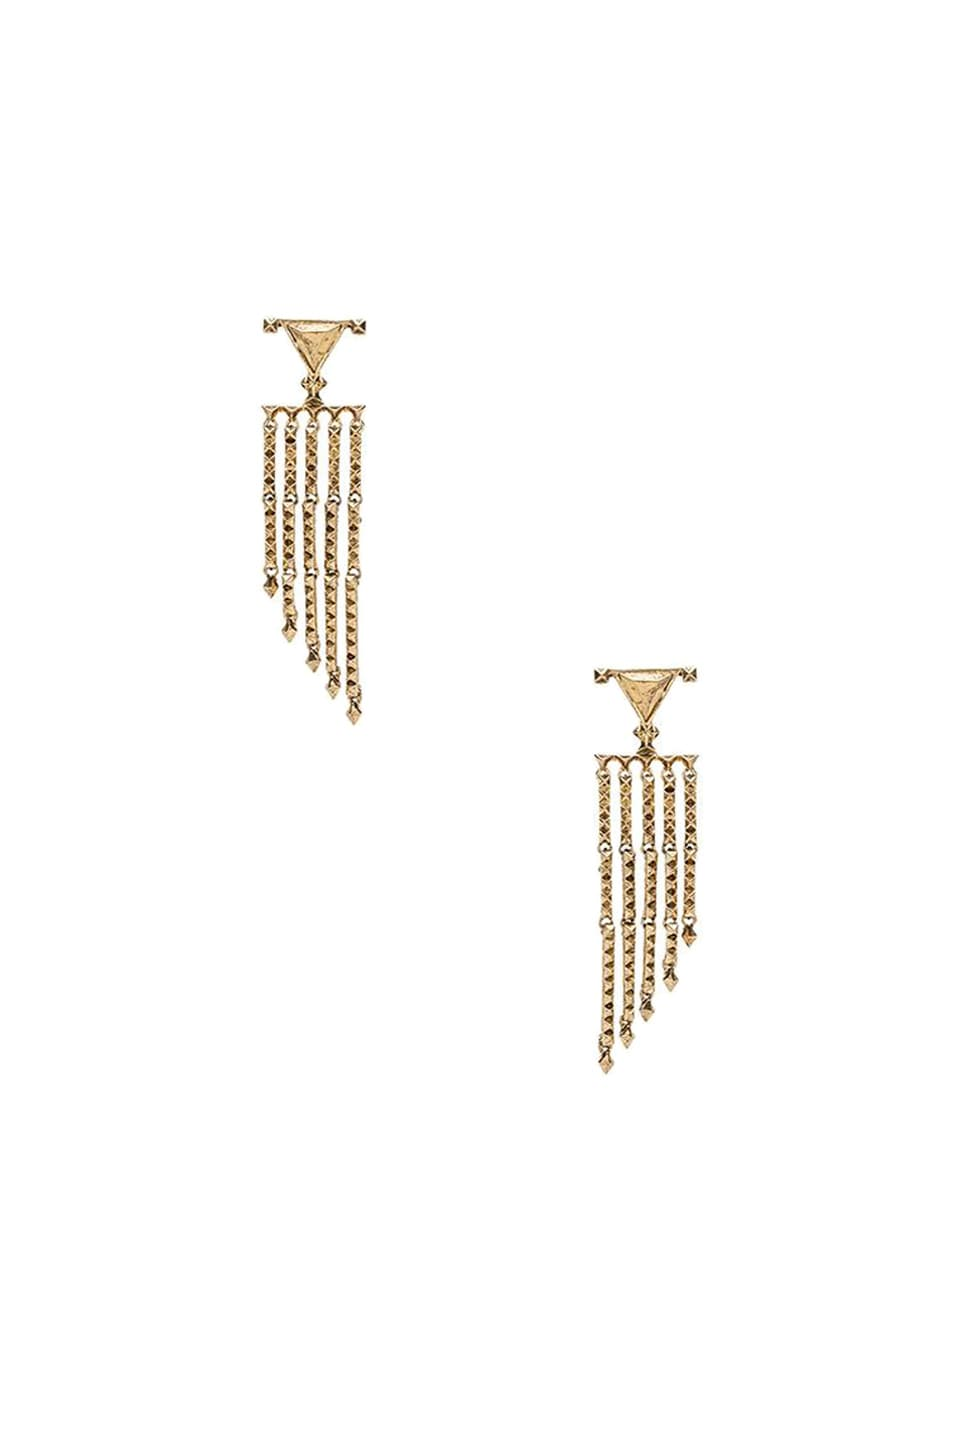 House of Harlow 1960 House of Harlow Tres Tri Fringe Earring in Gold